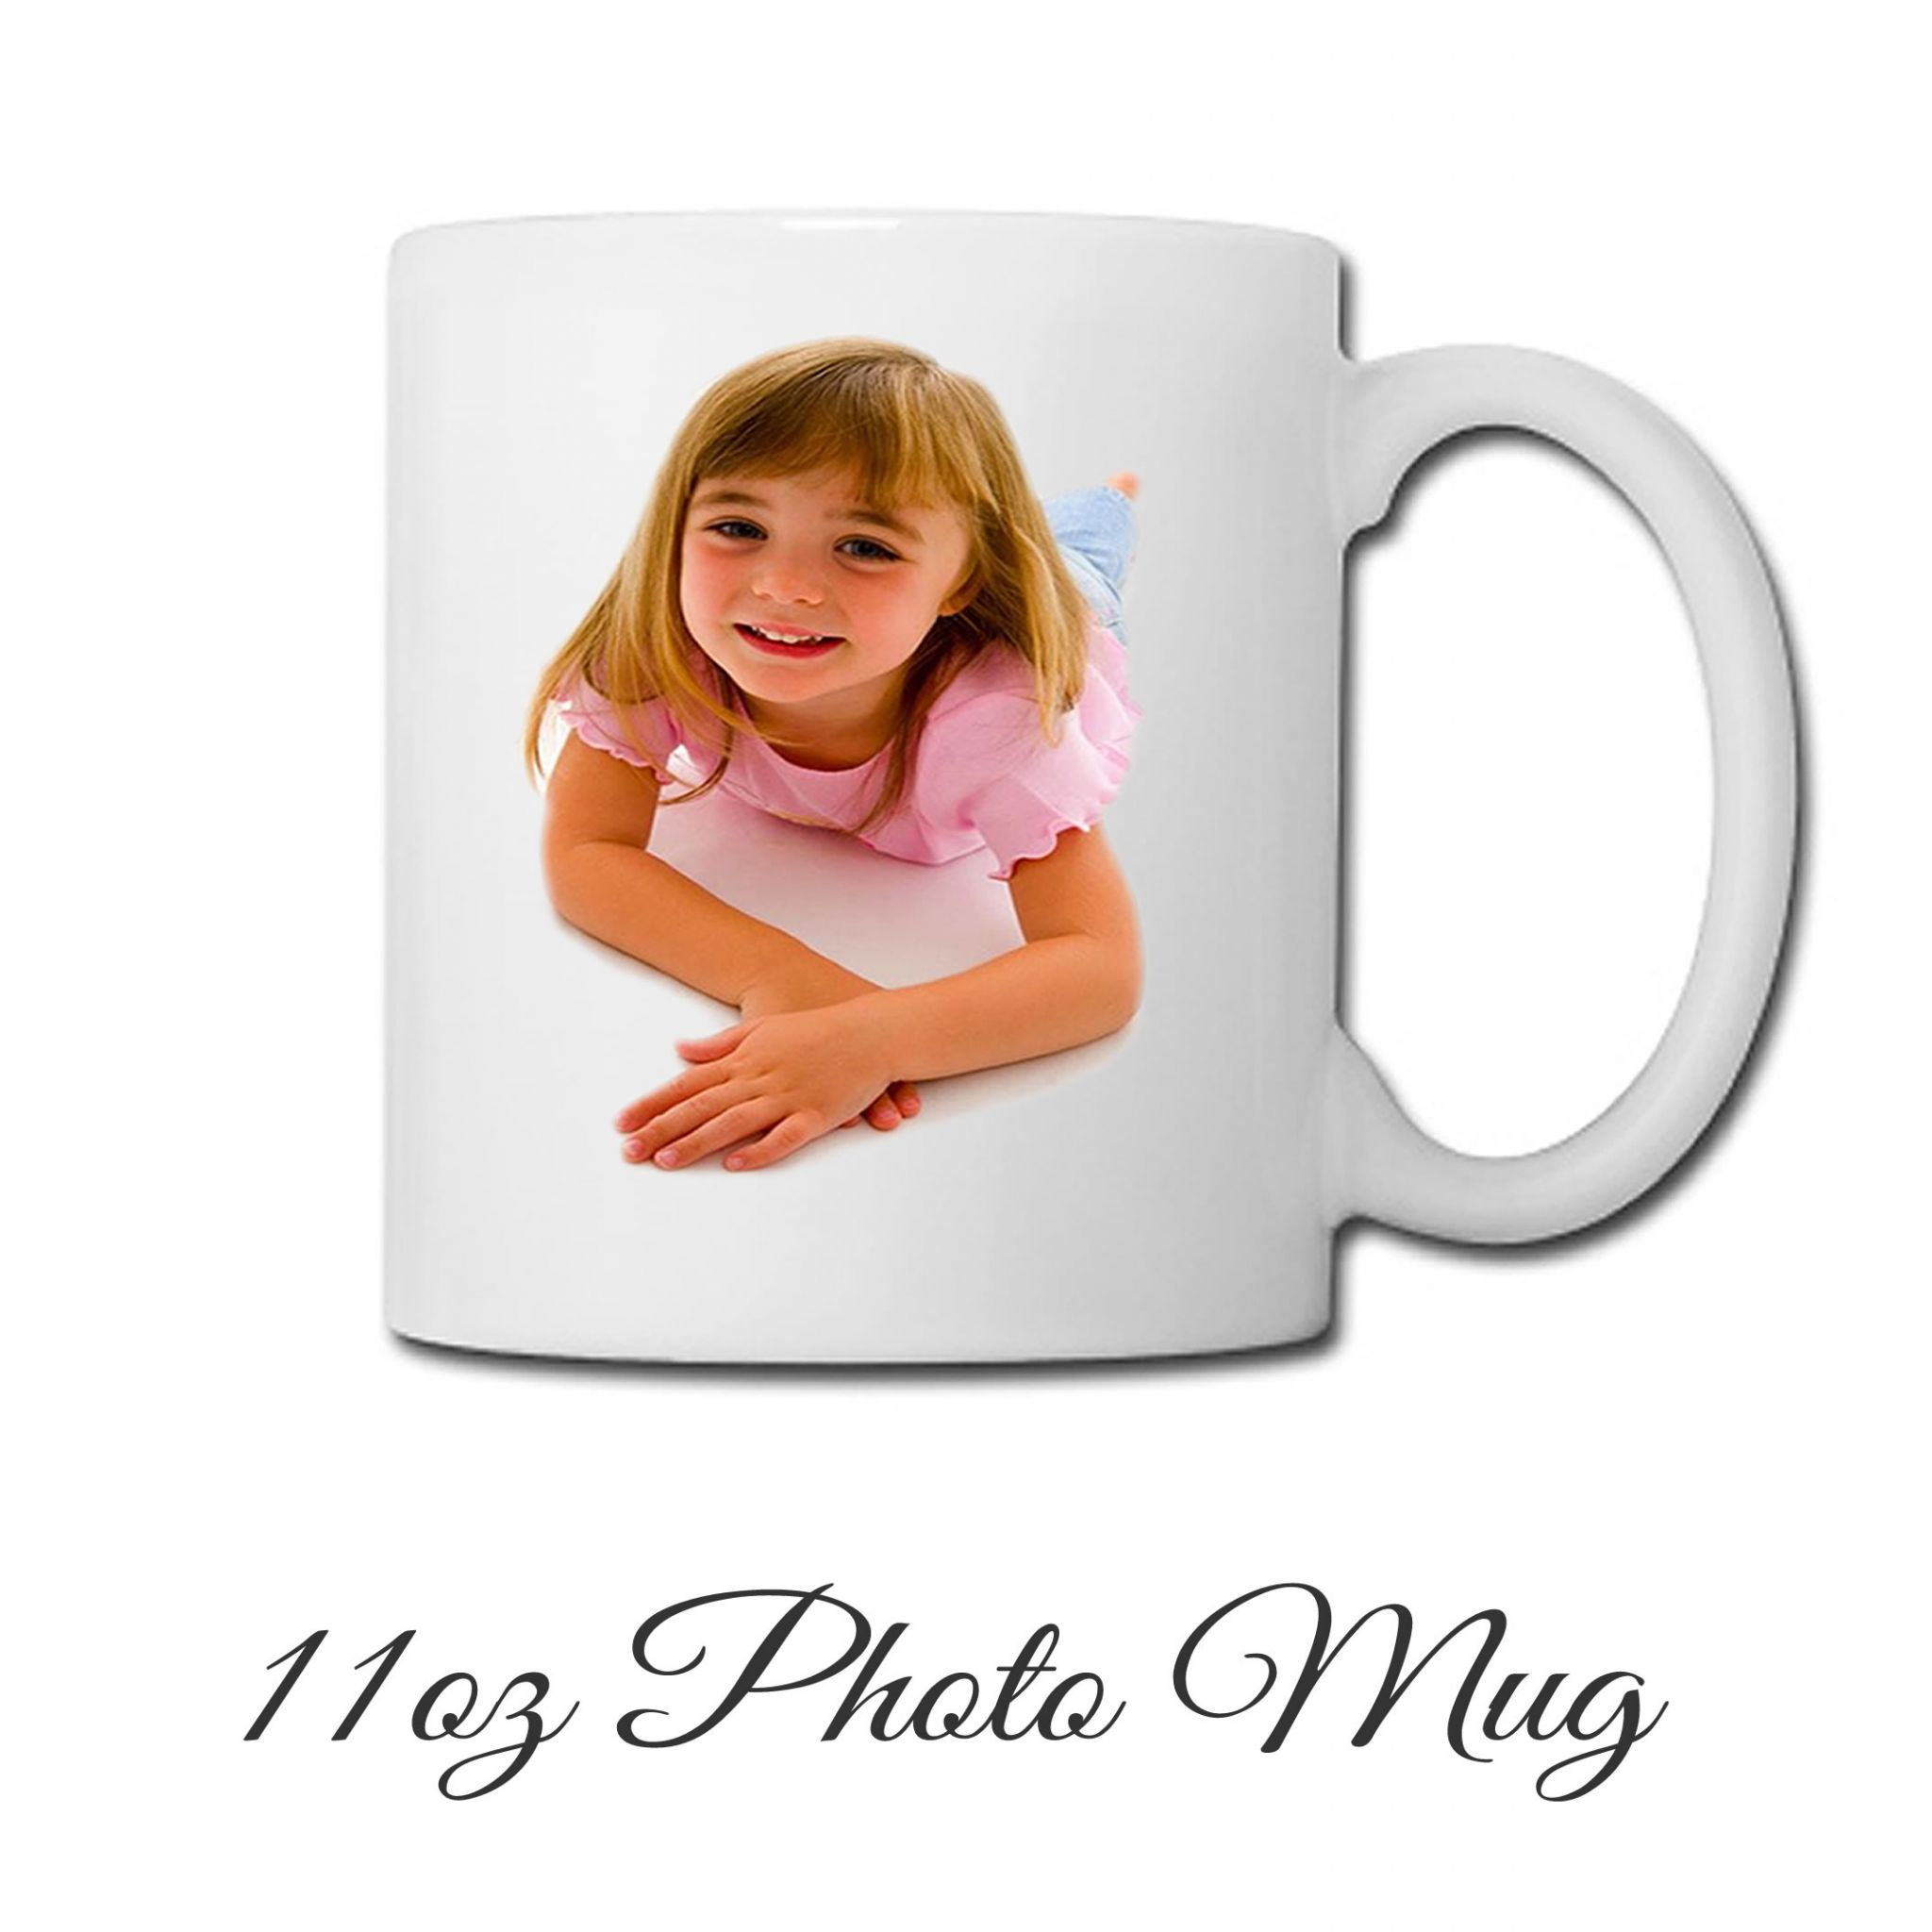 Little Gifts With Love - Personalised Photo 11oz Ceramic Coffee Mug